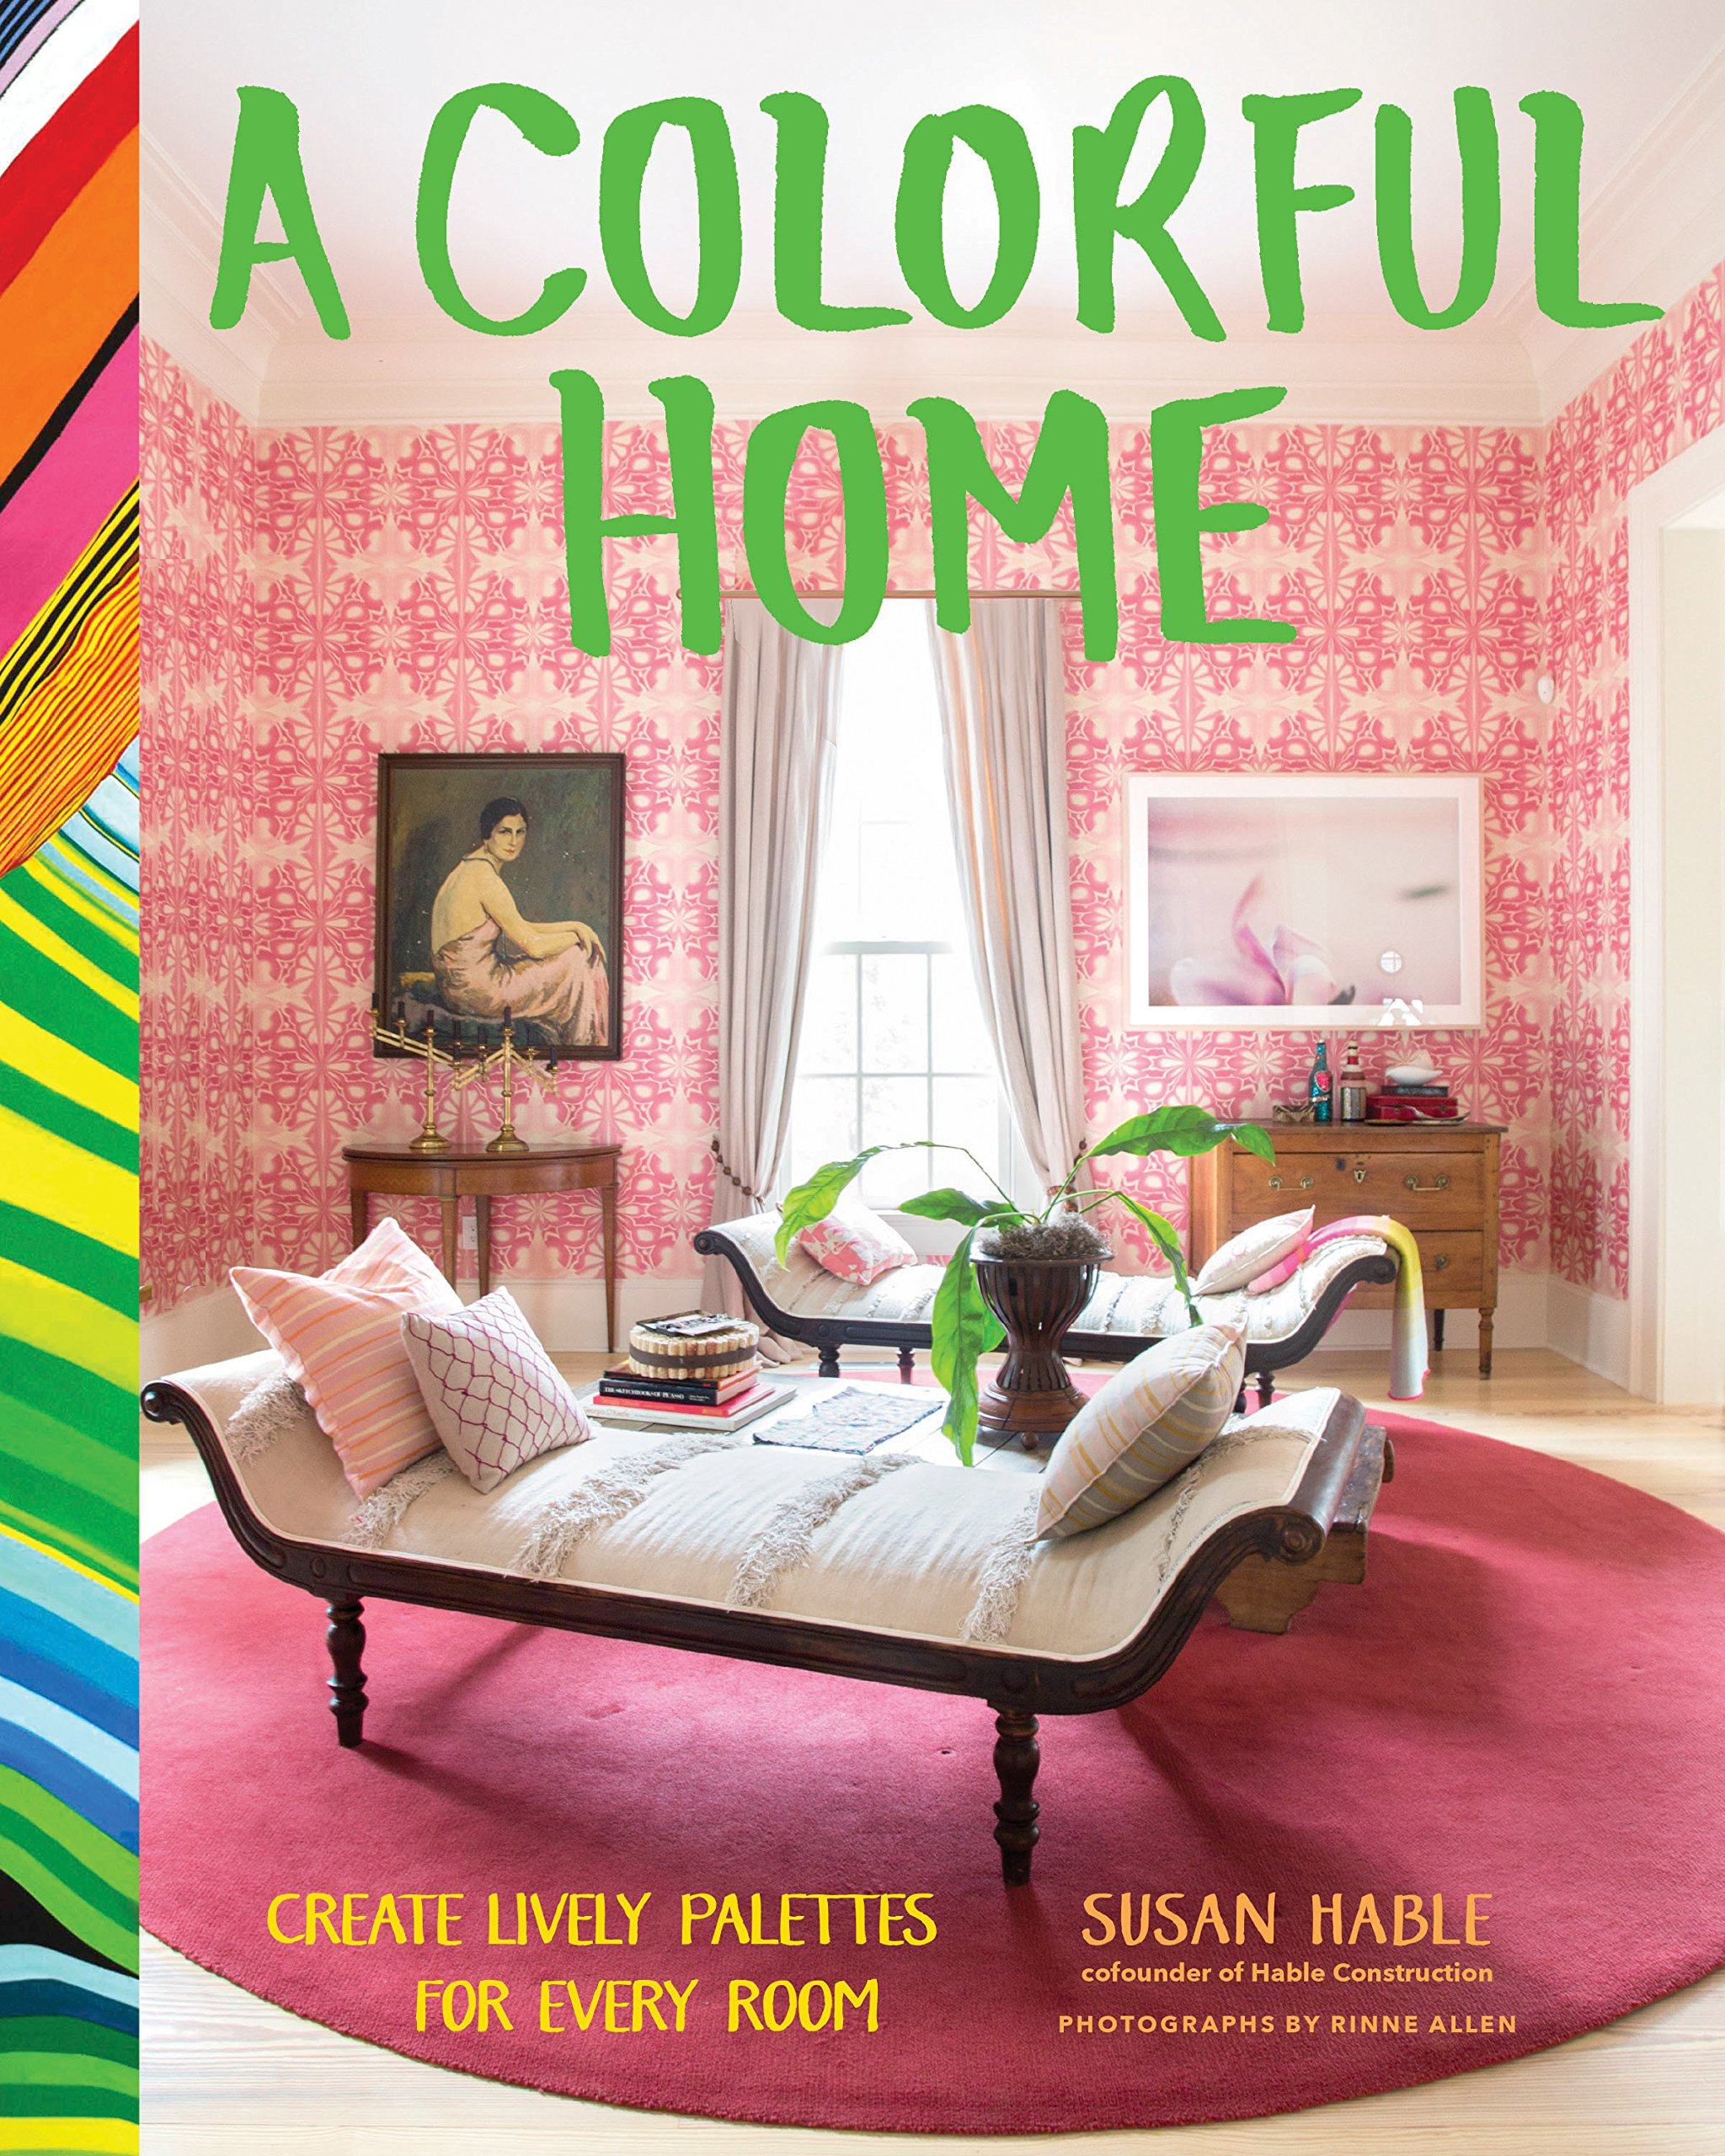 A Colorful Home: Create Lively Palettes for Every Room: Susan Hable ...